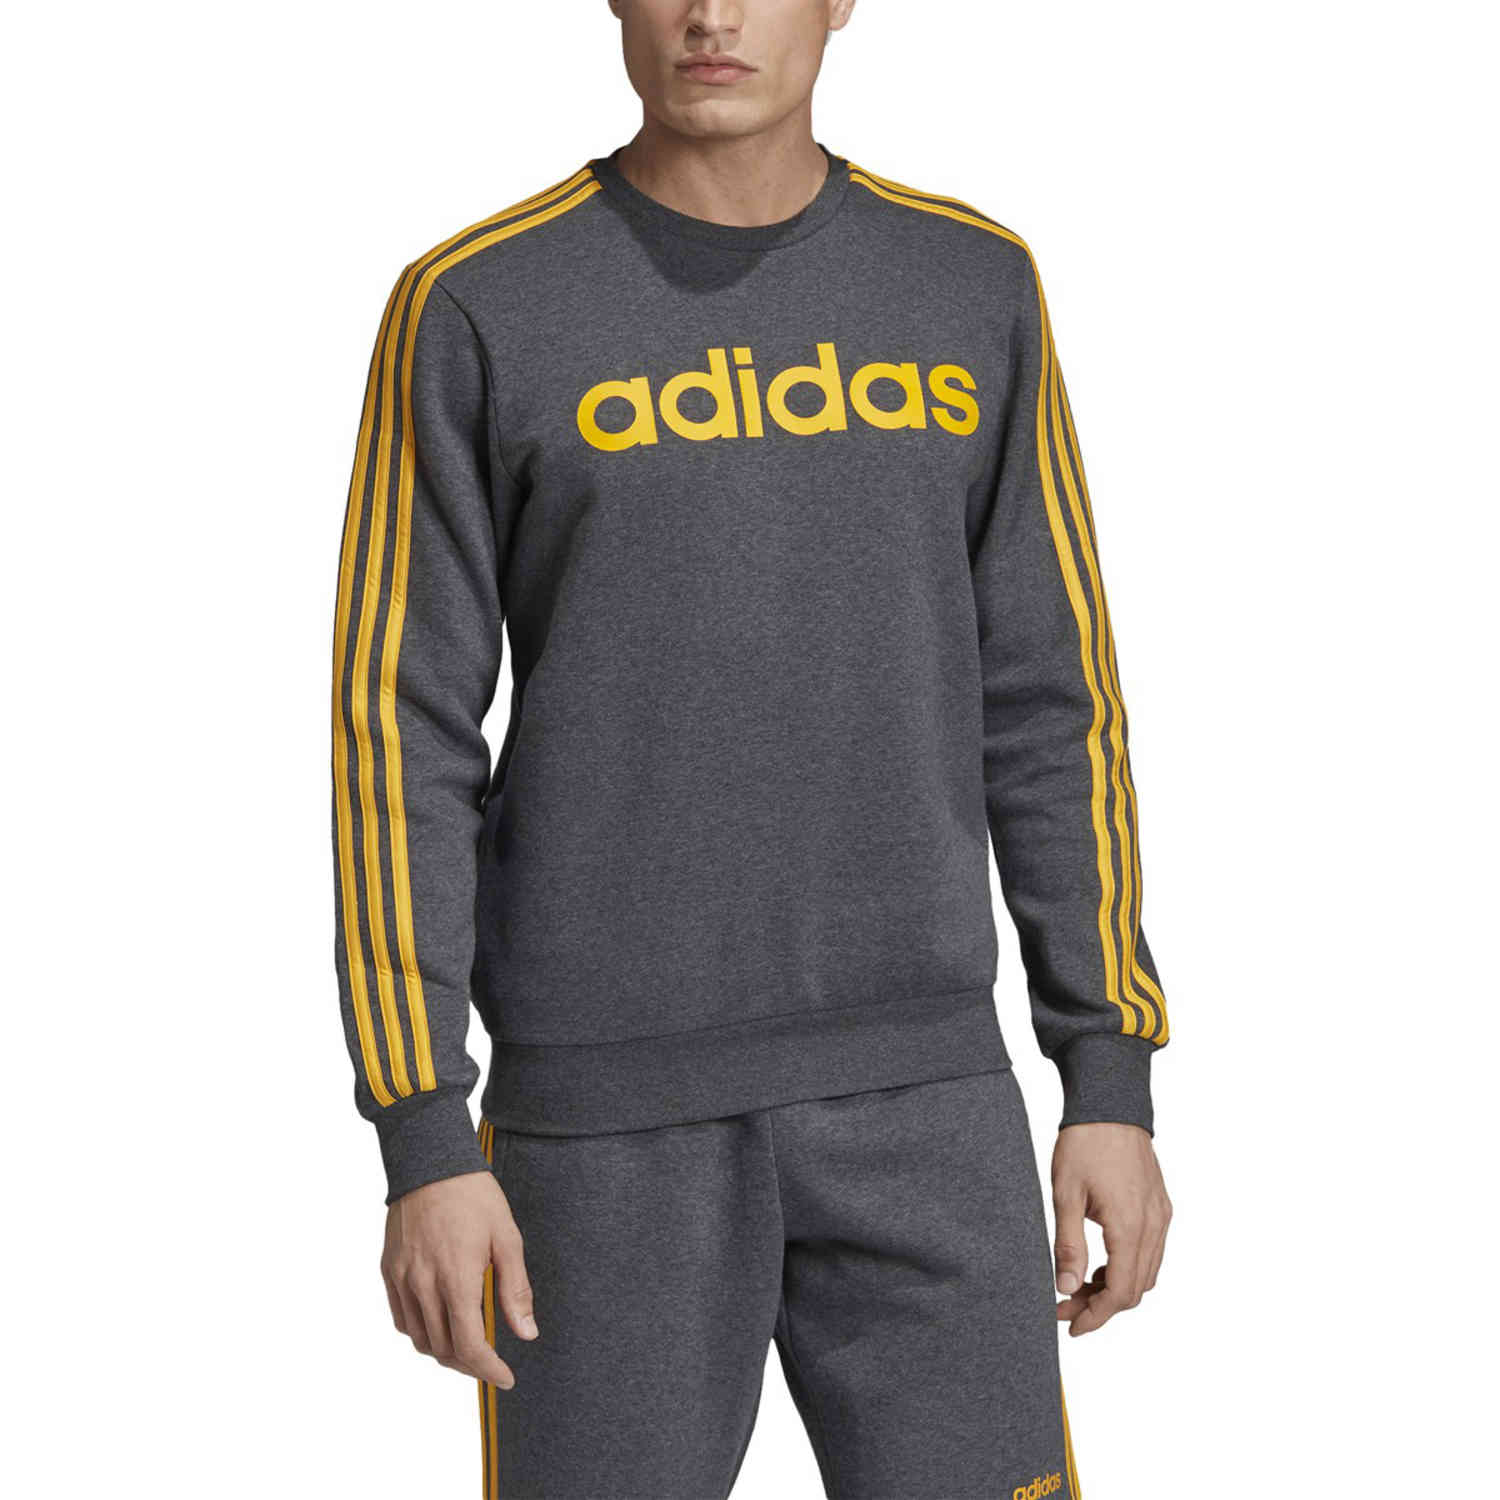 adidas fleece grey